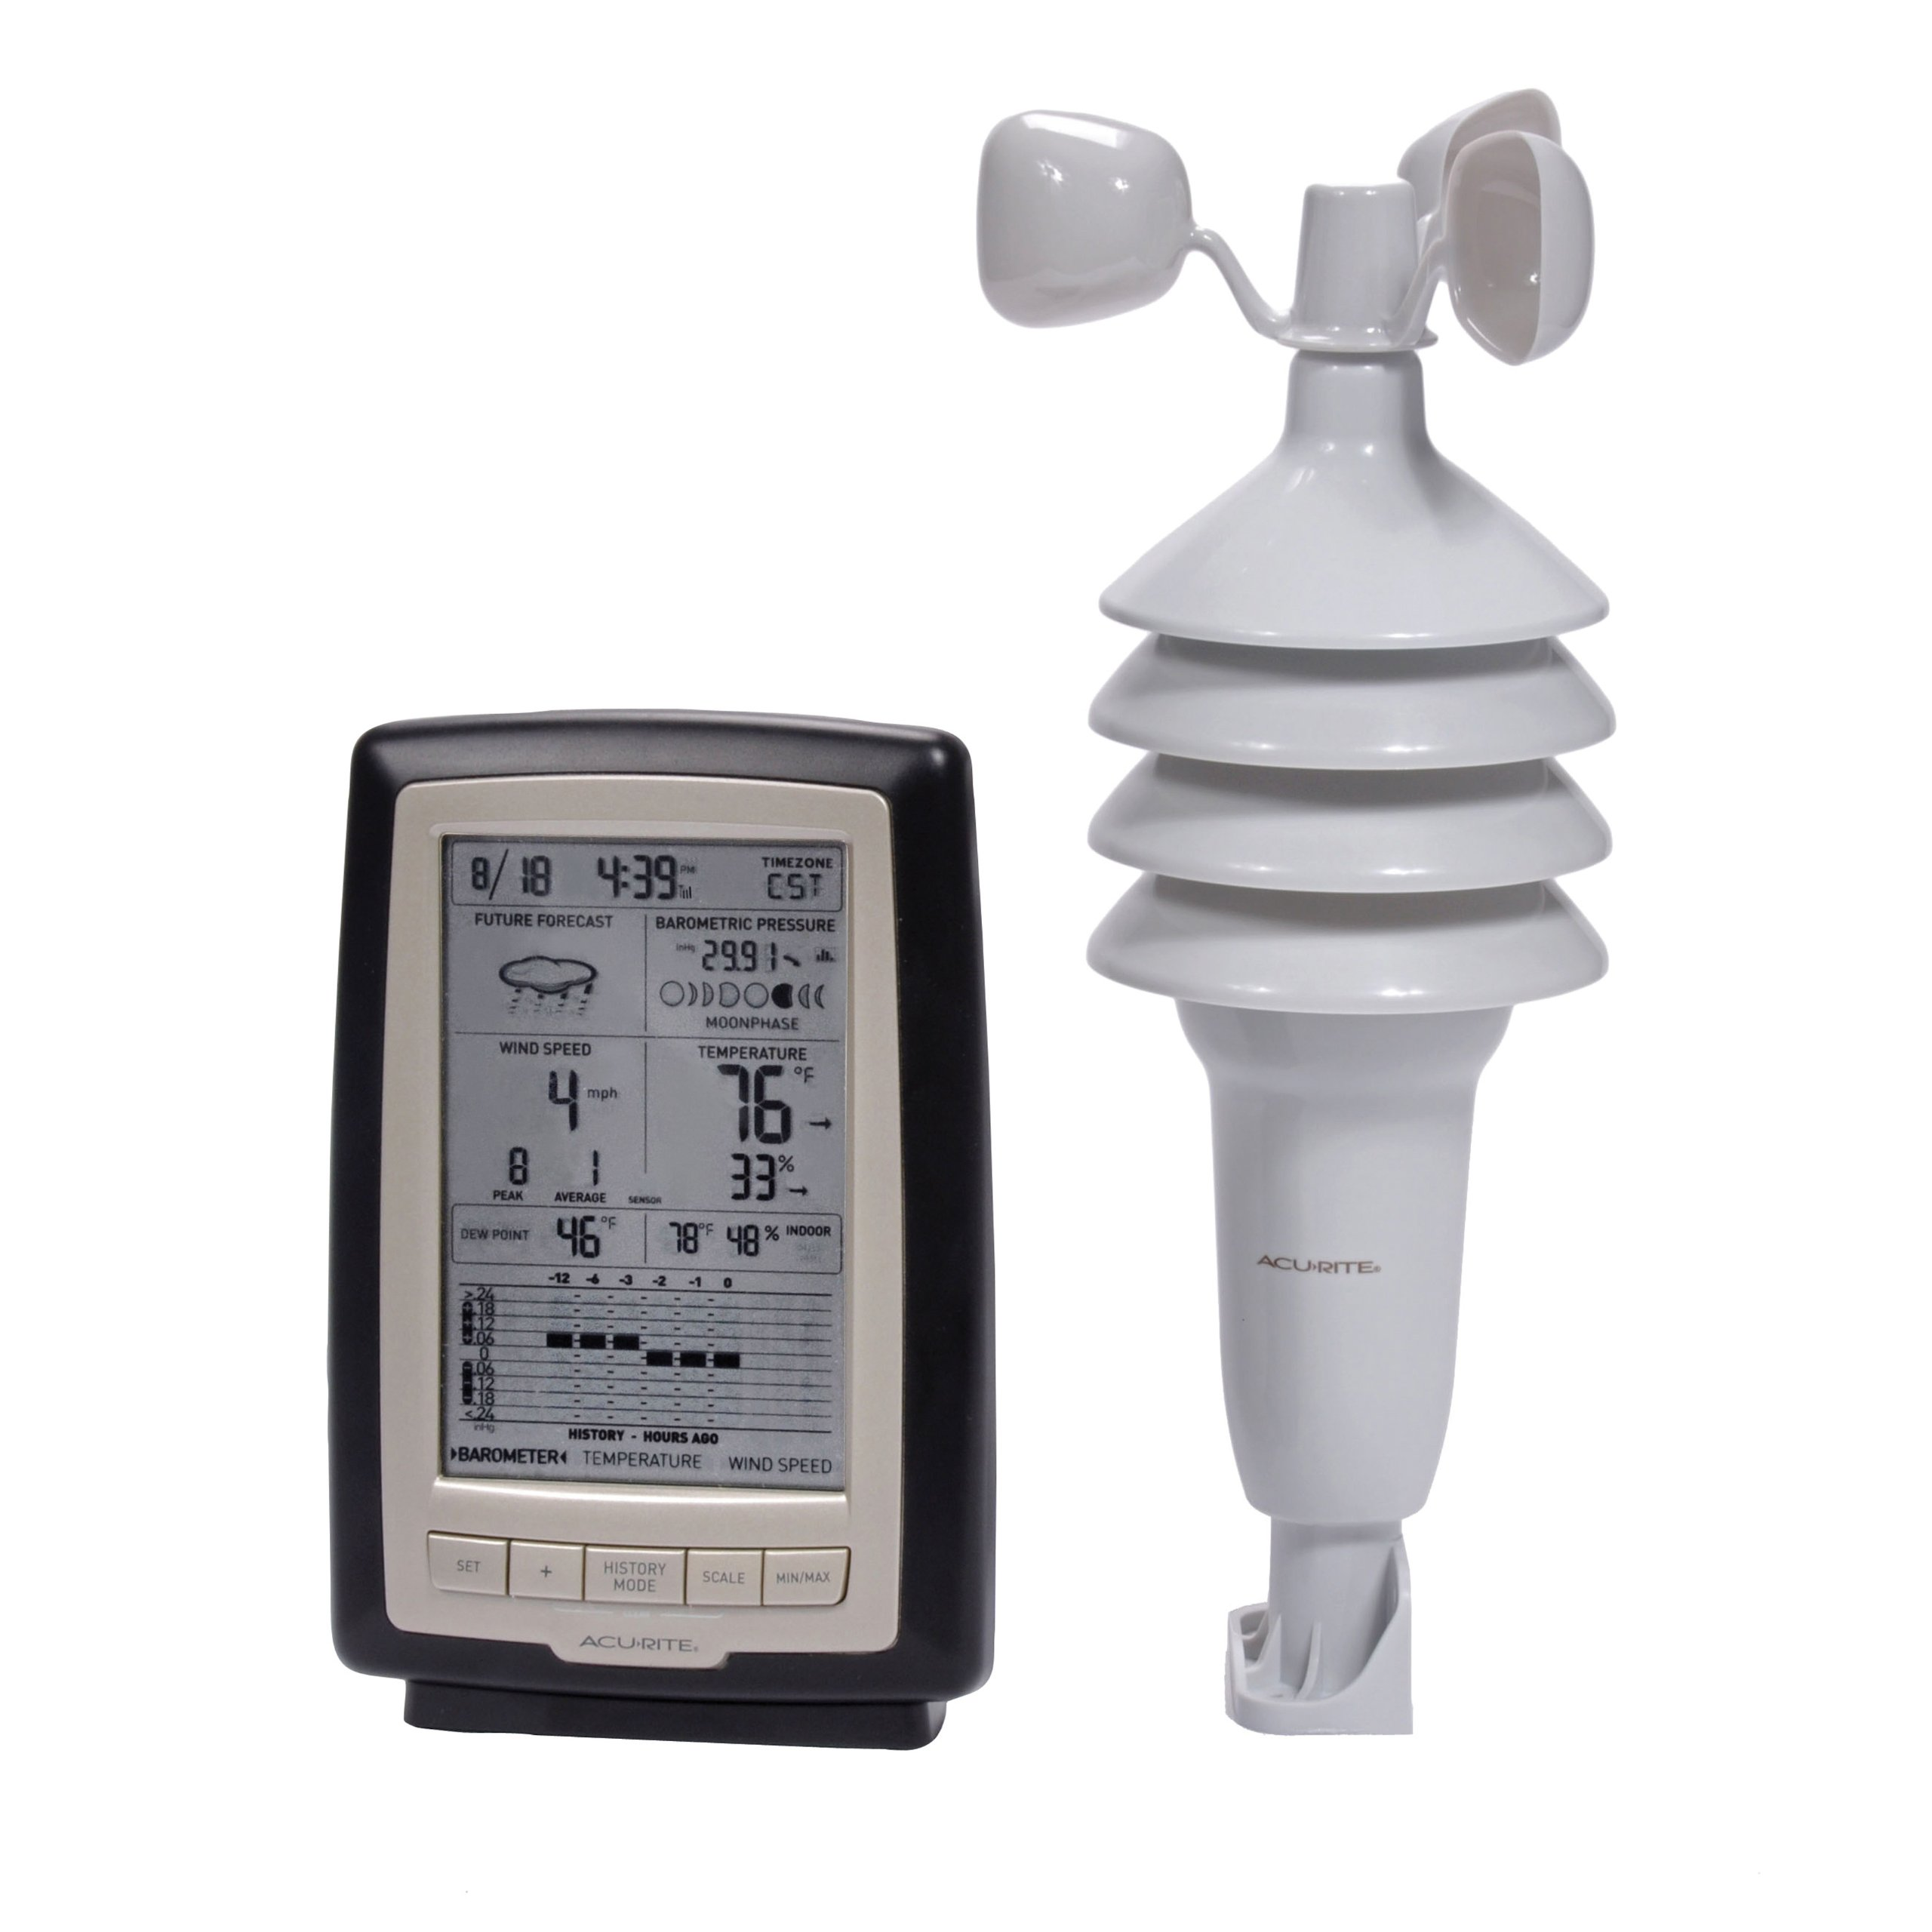 AcuRite 00638A2 Wireless Weather Station with Wind Sensor